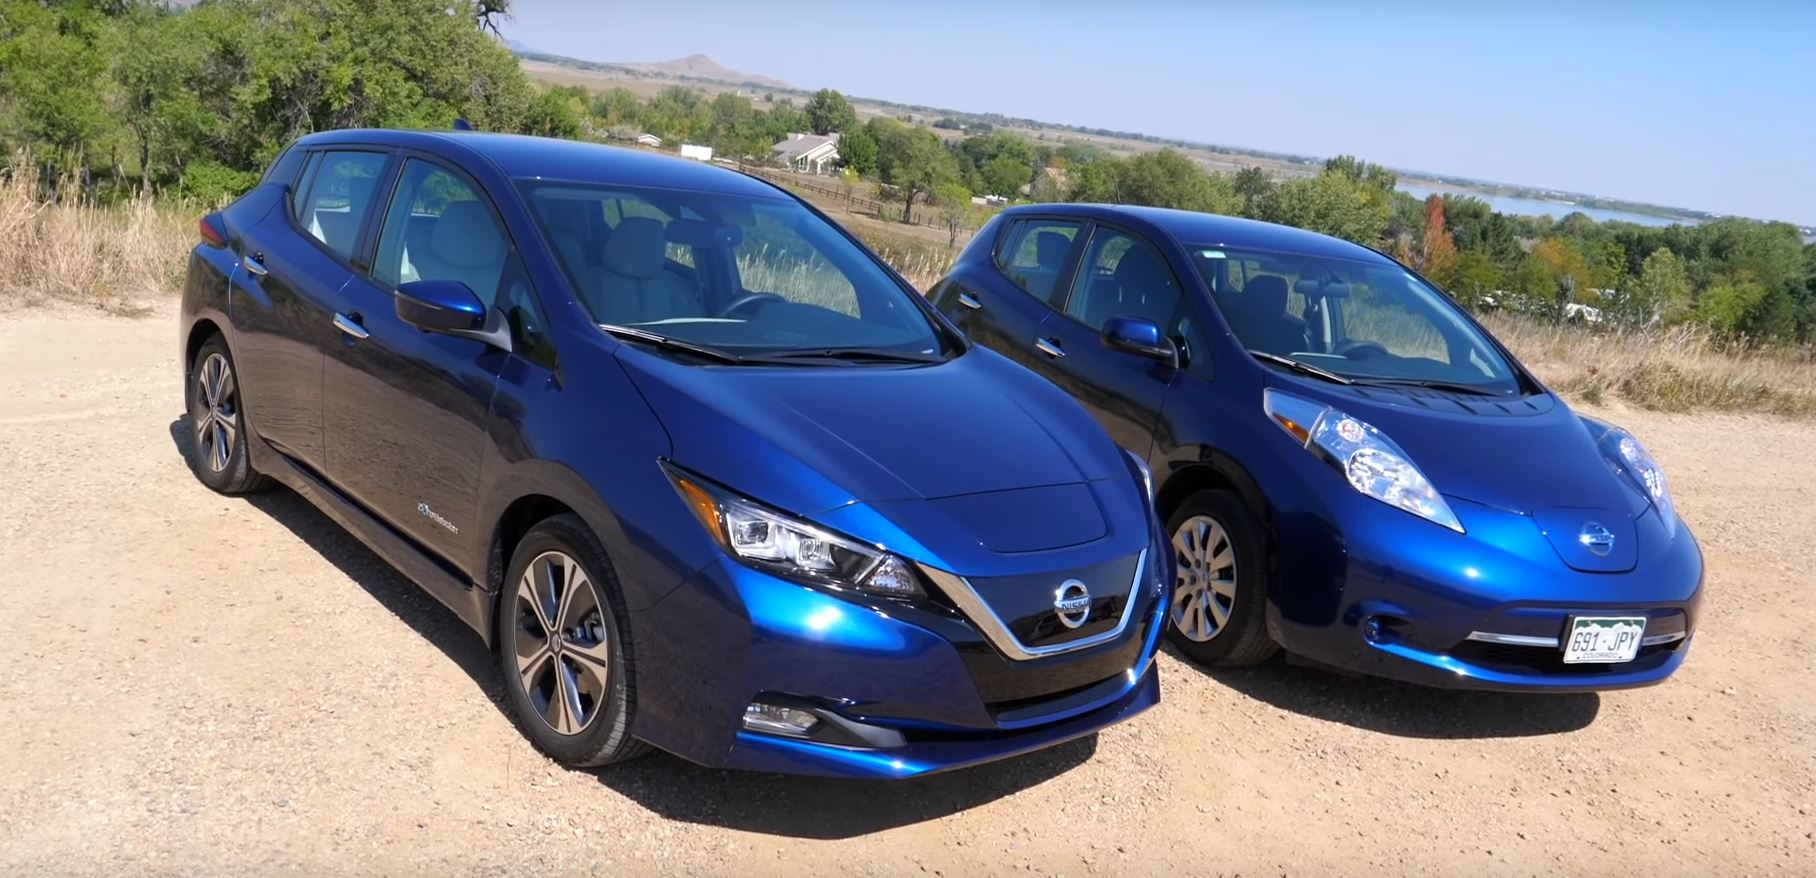 New Nissan Leaf Vs Old Nissan Leaf Some Things Are The Same